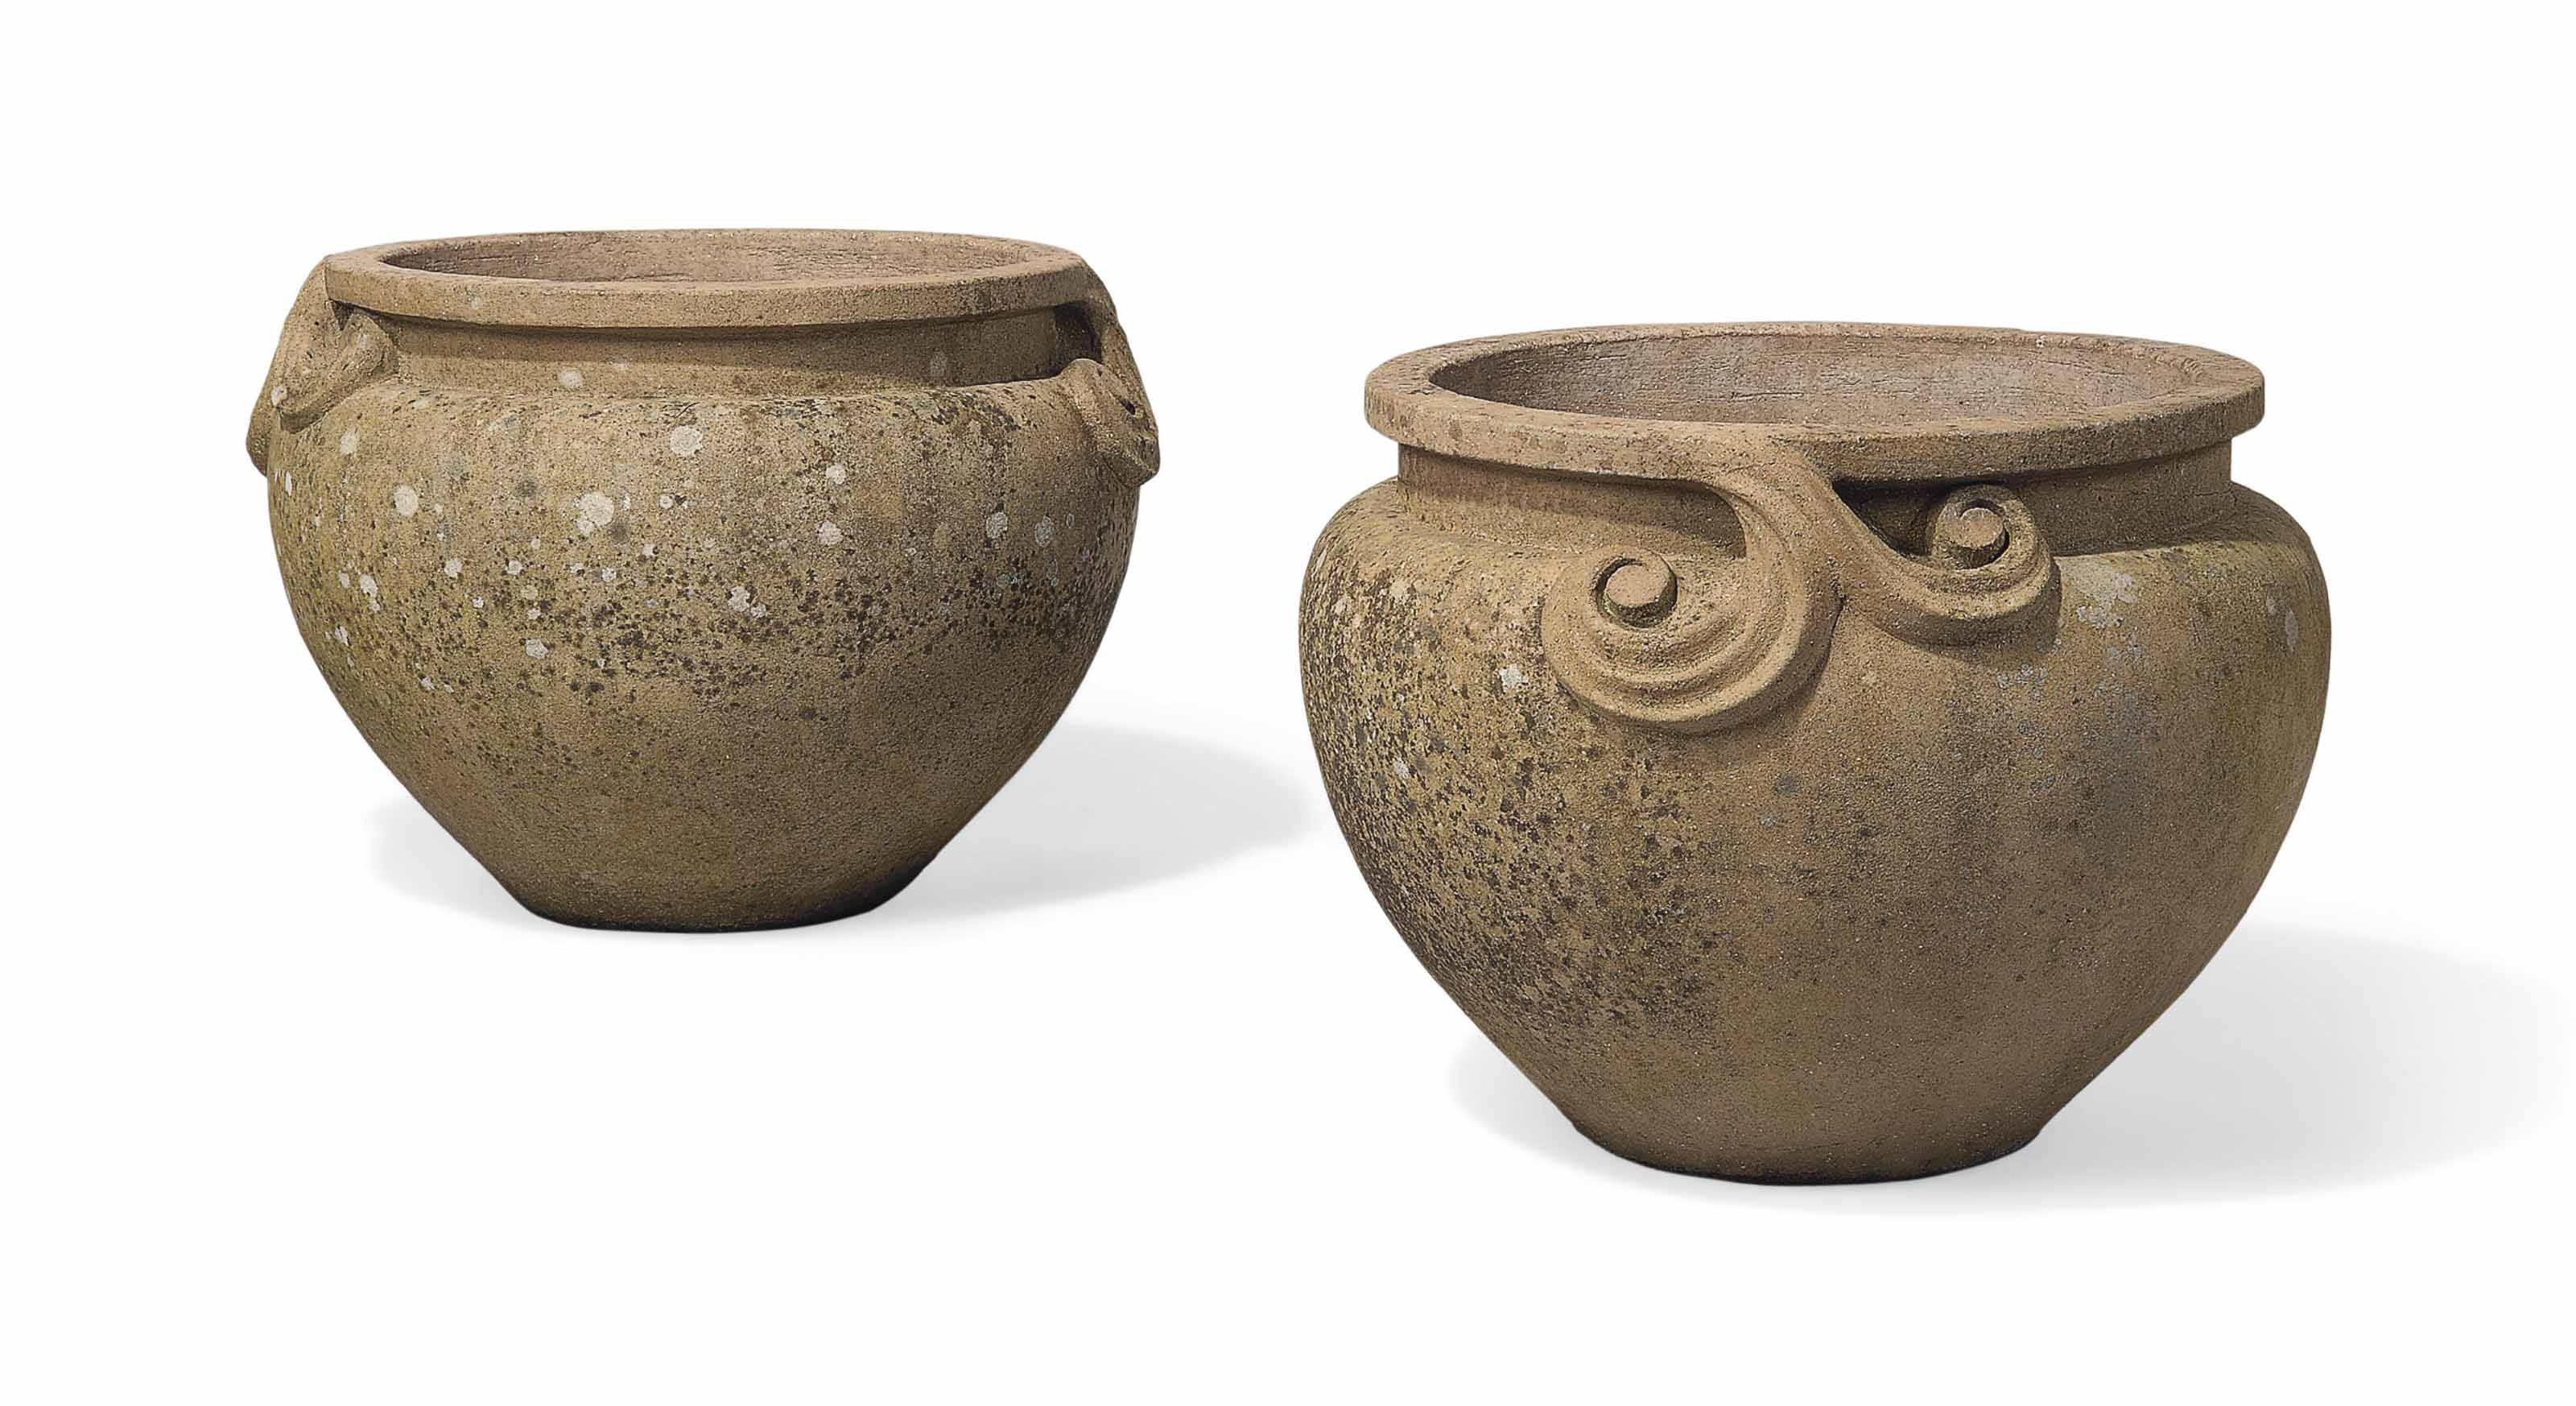 A PAIR OF TERRACOTTA POTS